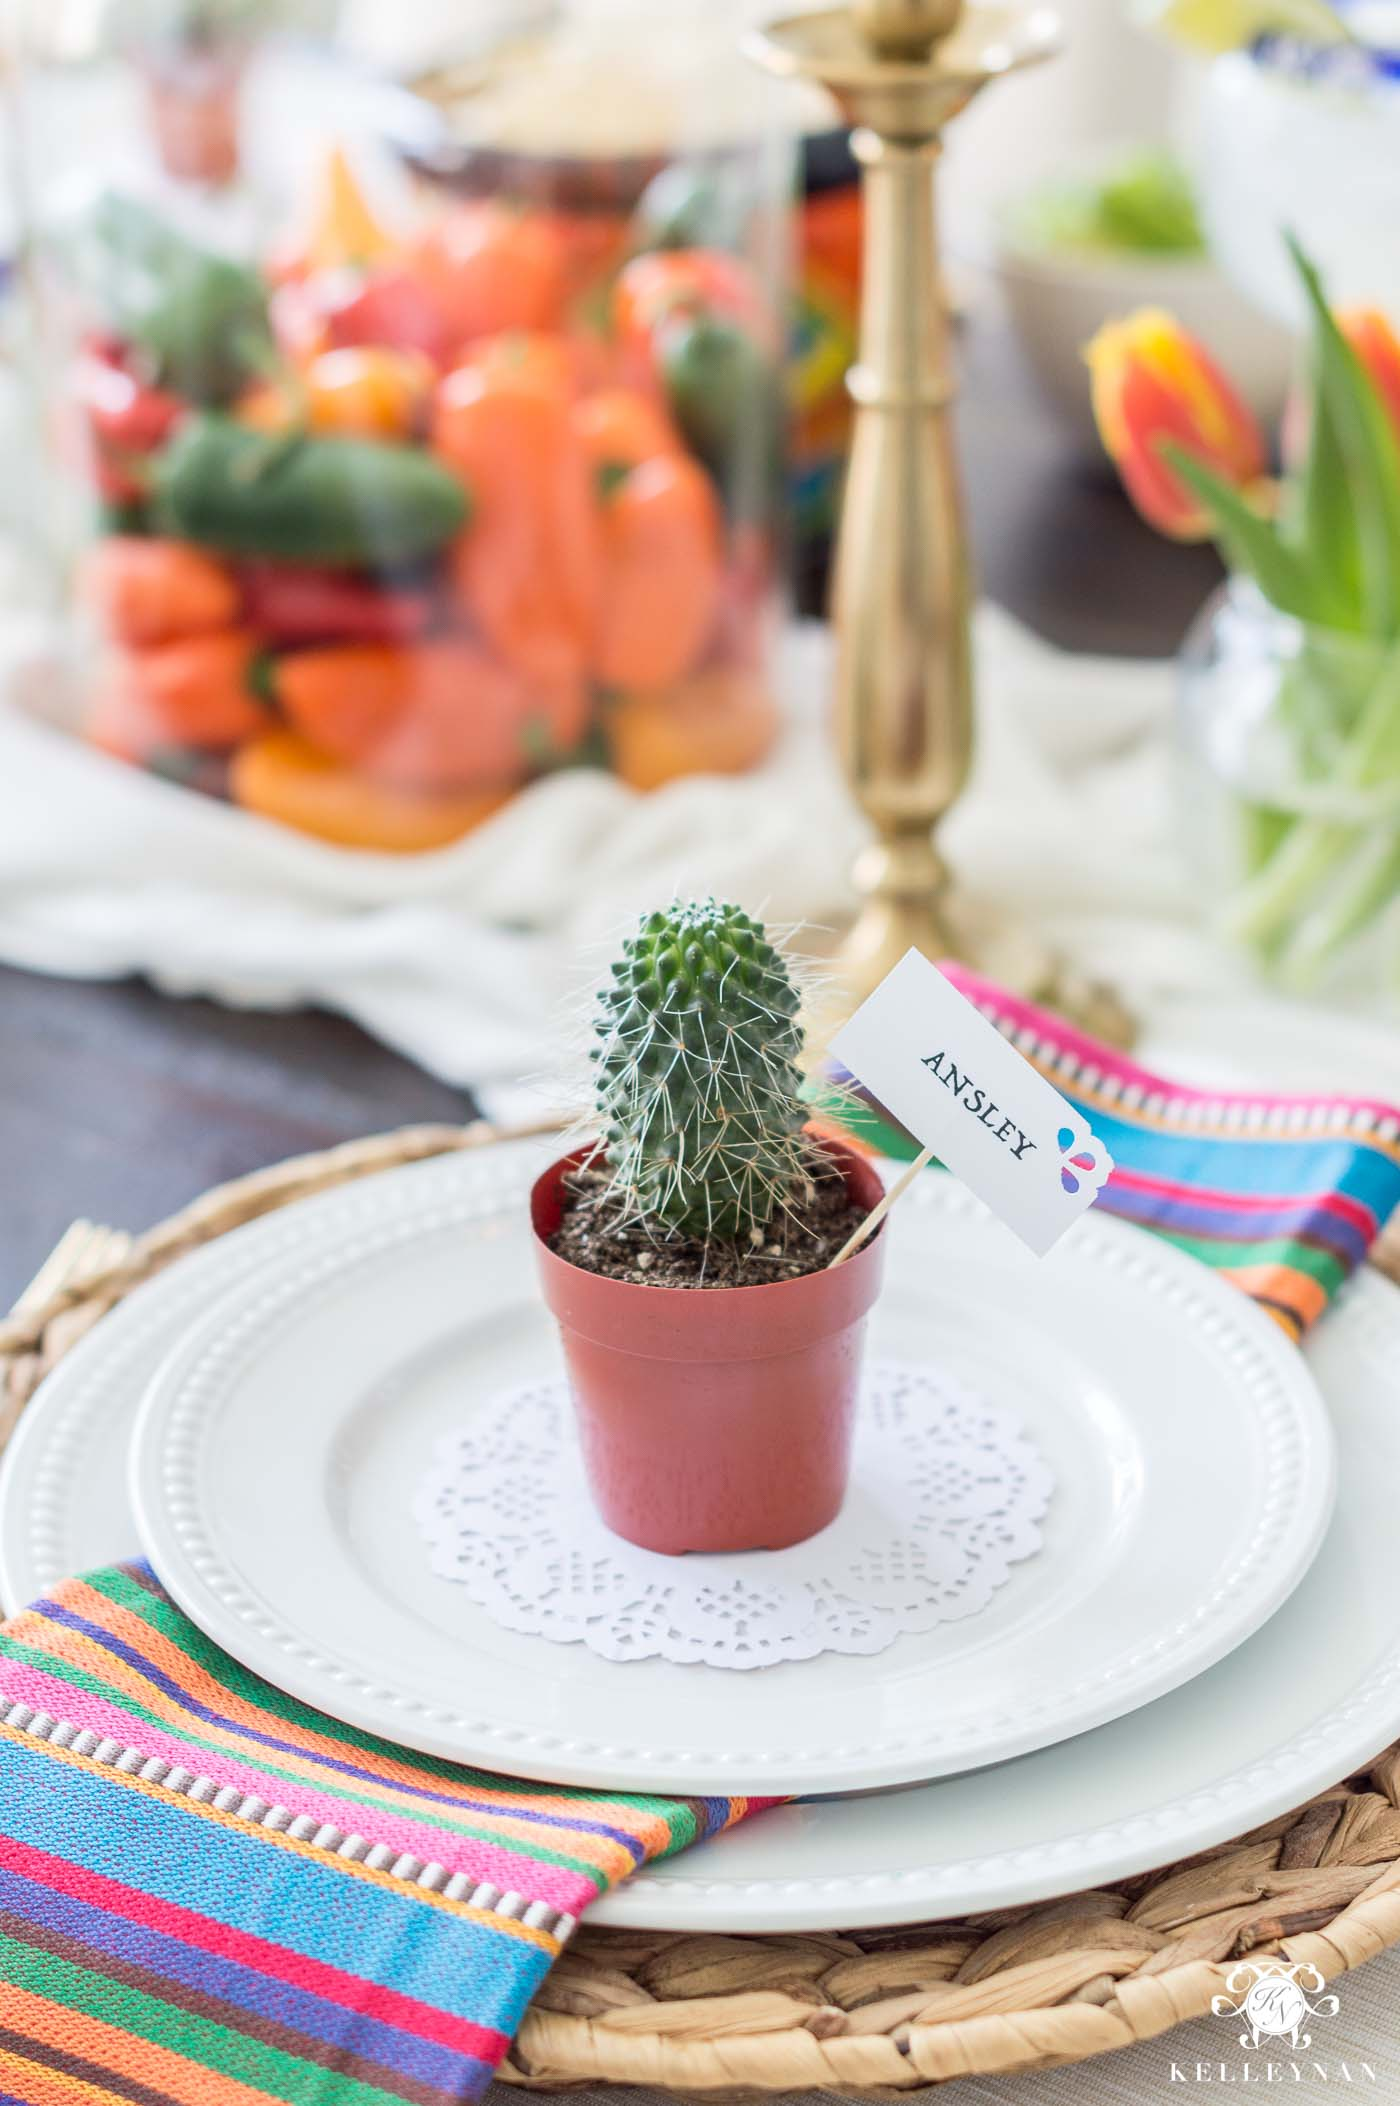 Mini Cactus at Each Place Setting for Mexican Themed Party